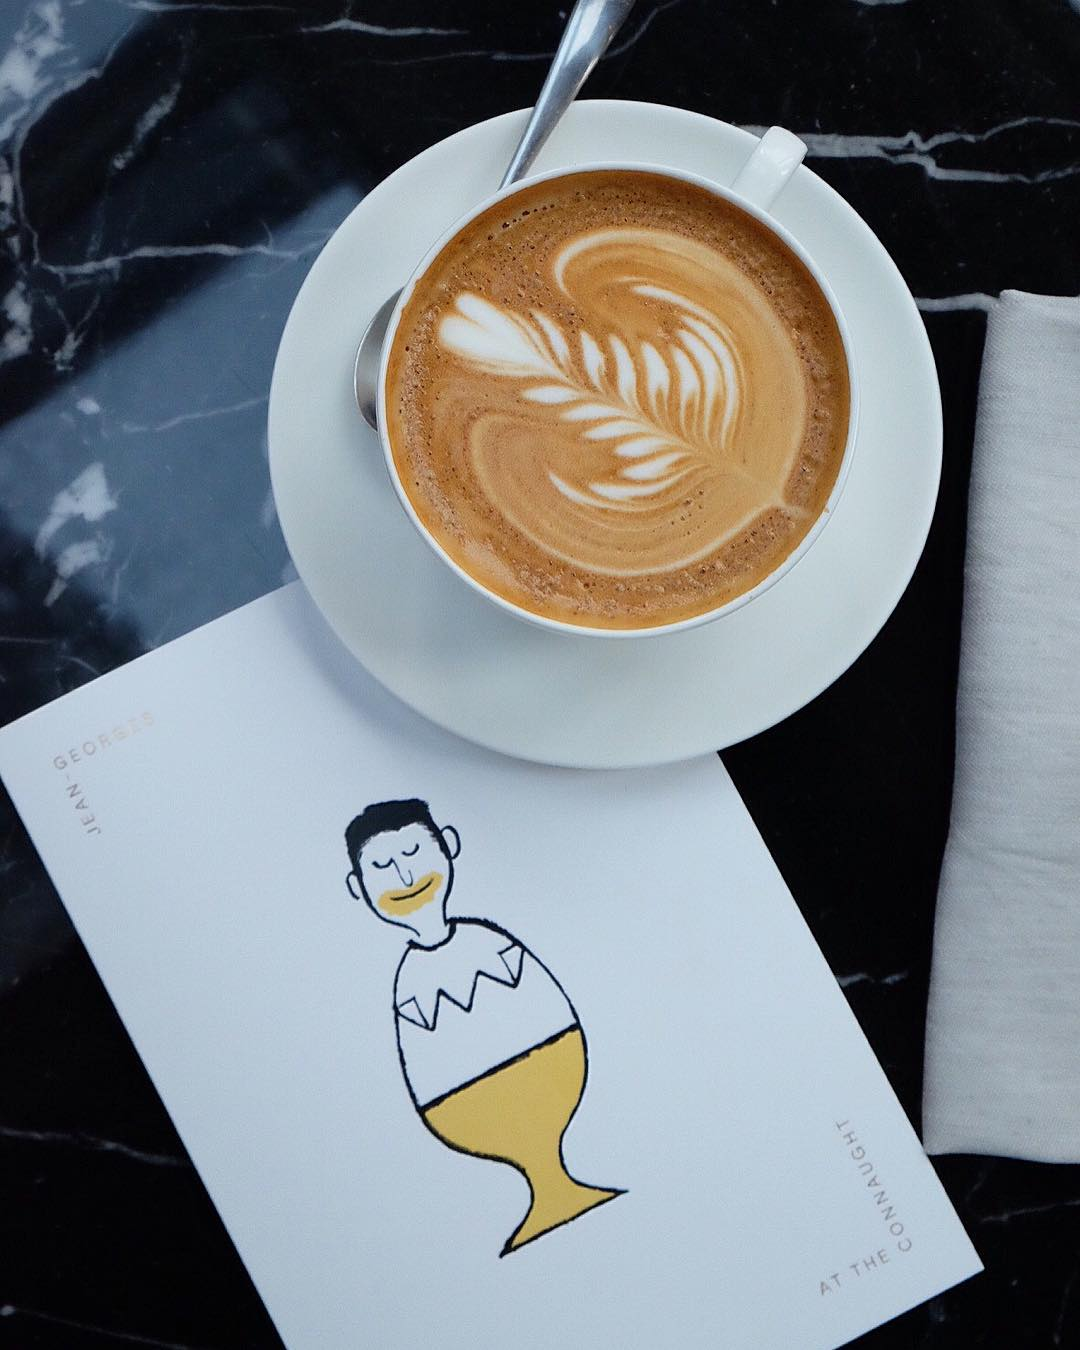 One of Jean Jullien's new illustrations for Jean-Georges at the Connaught